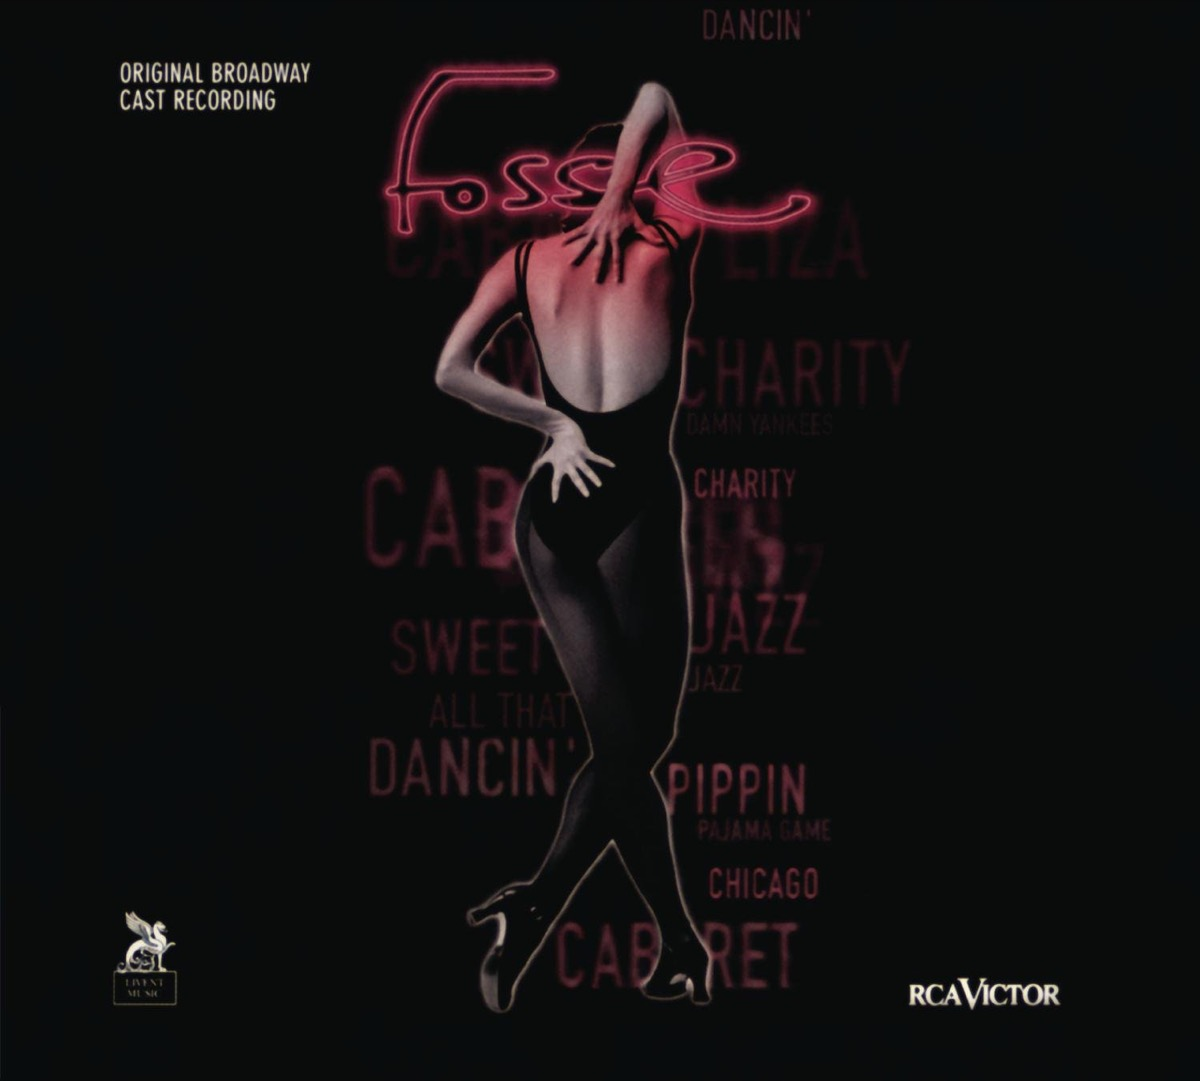 the original soundtrack recording of fosse on broadway